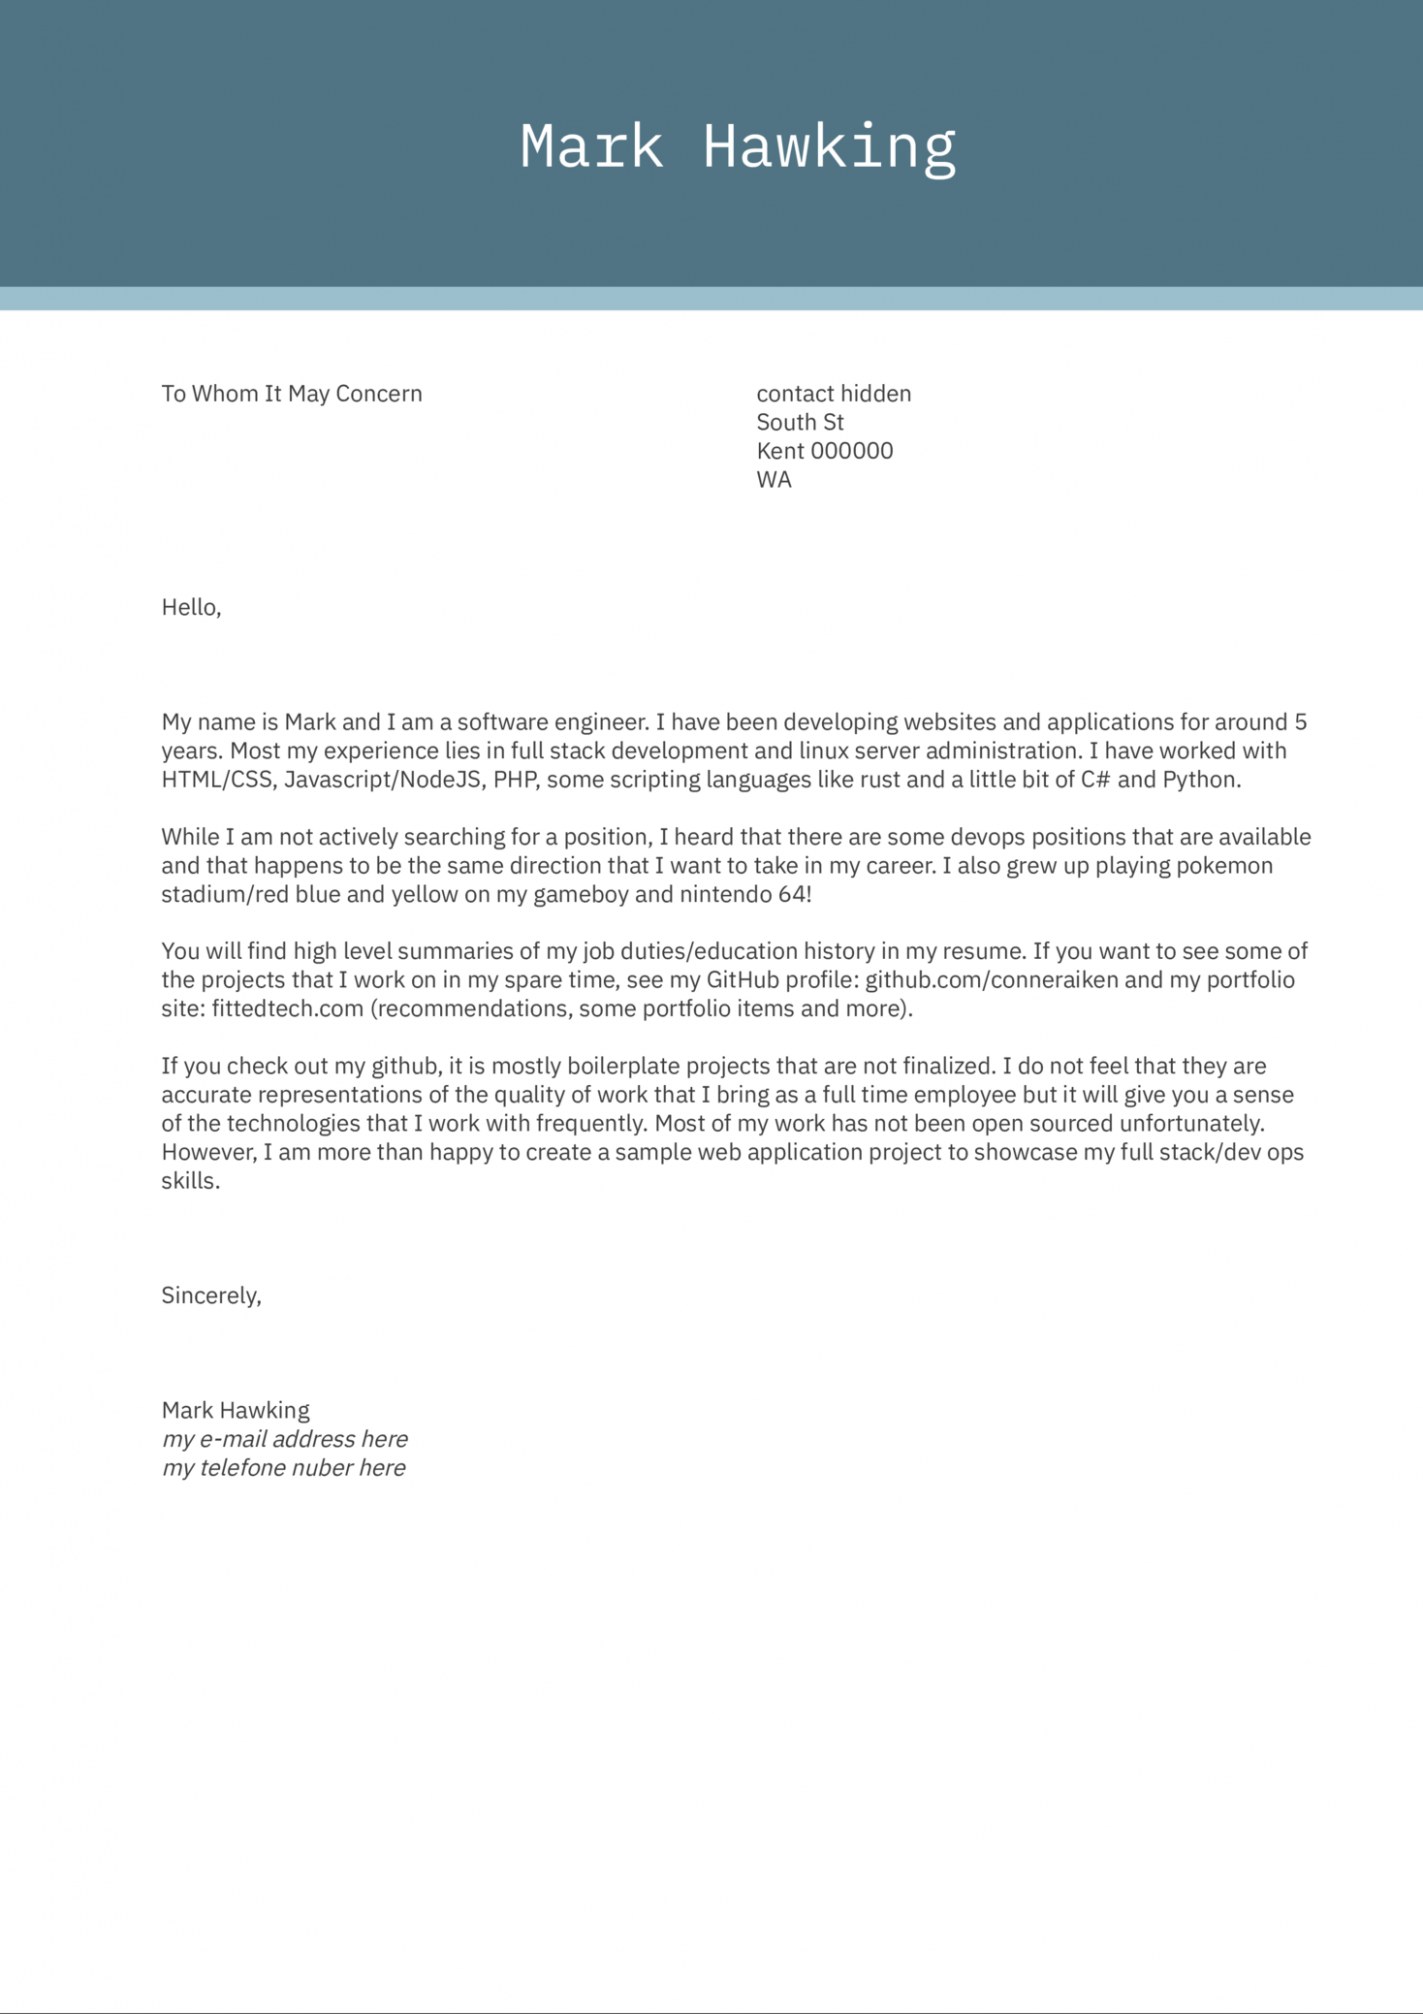 Cover Letter In Html Email In 2021 Cover Letter Cover Letter Sample Cover Letter Example